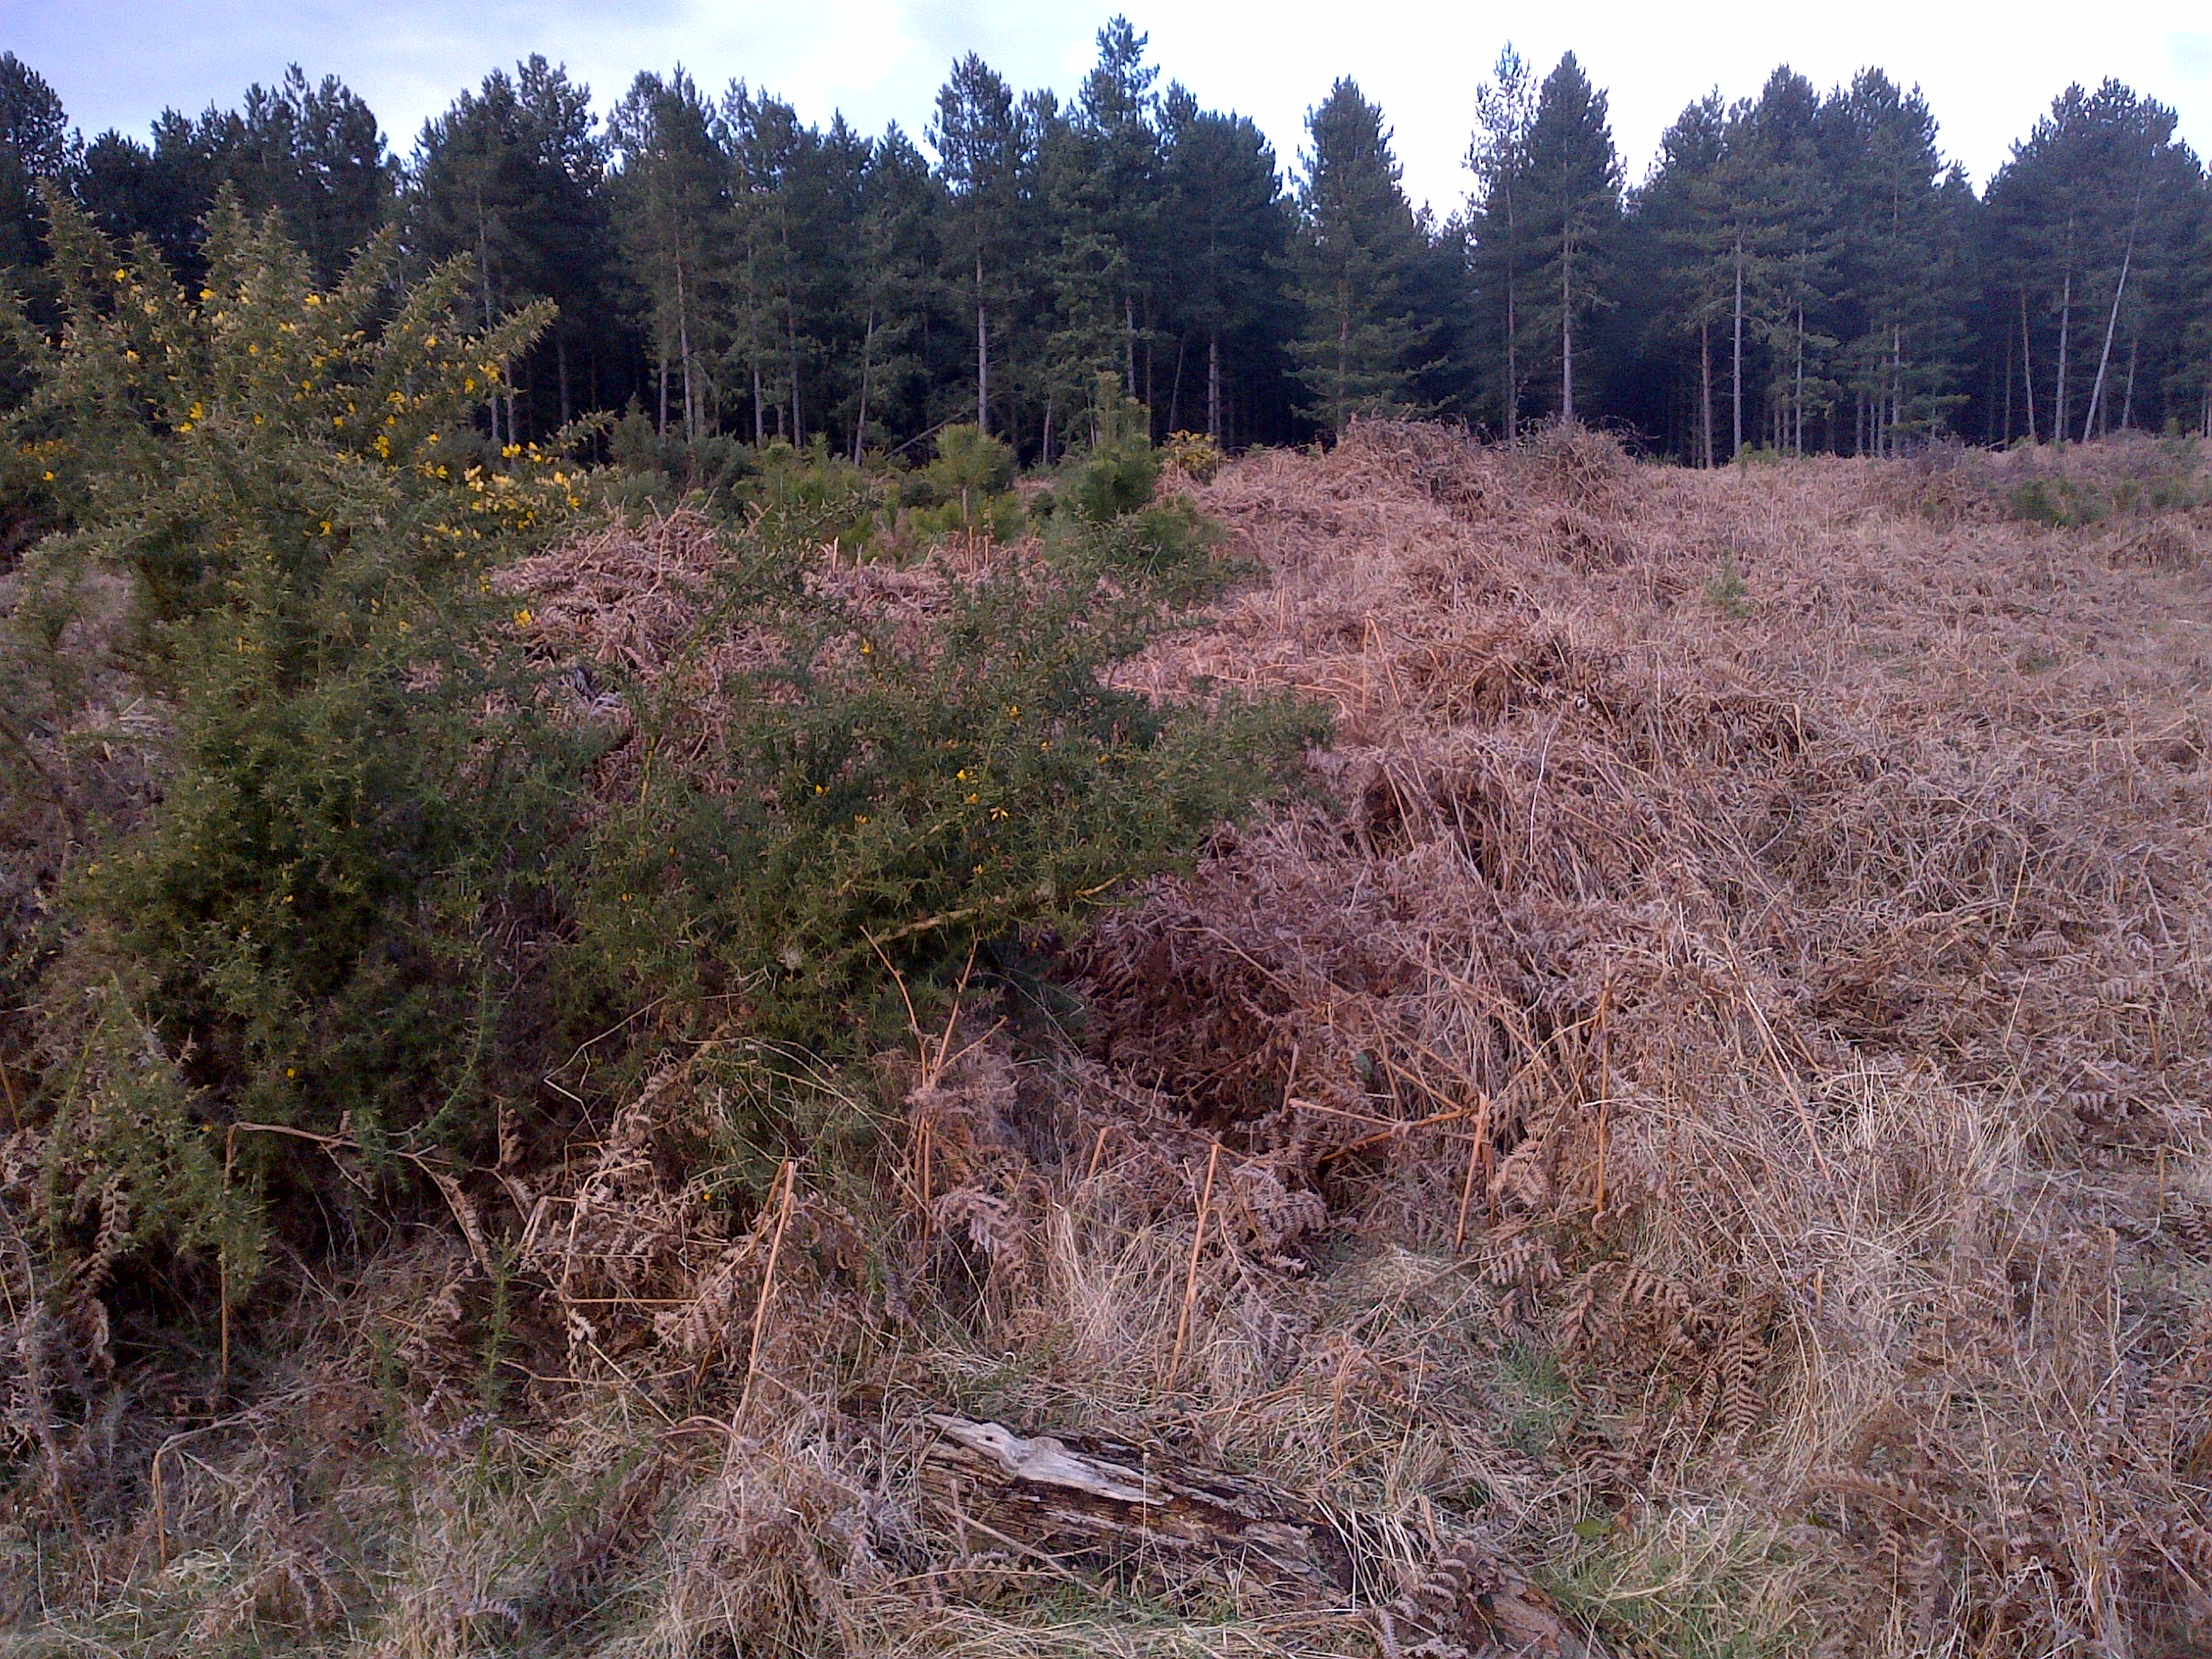 Downham Warren - Section 22